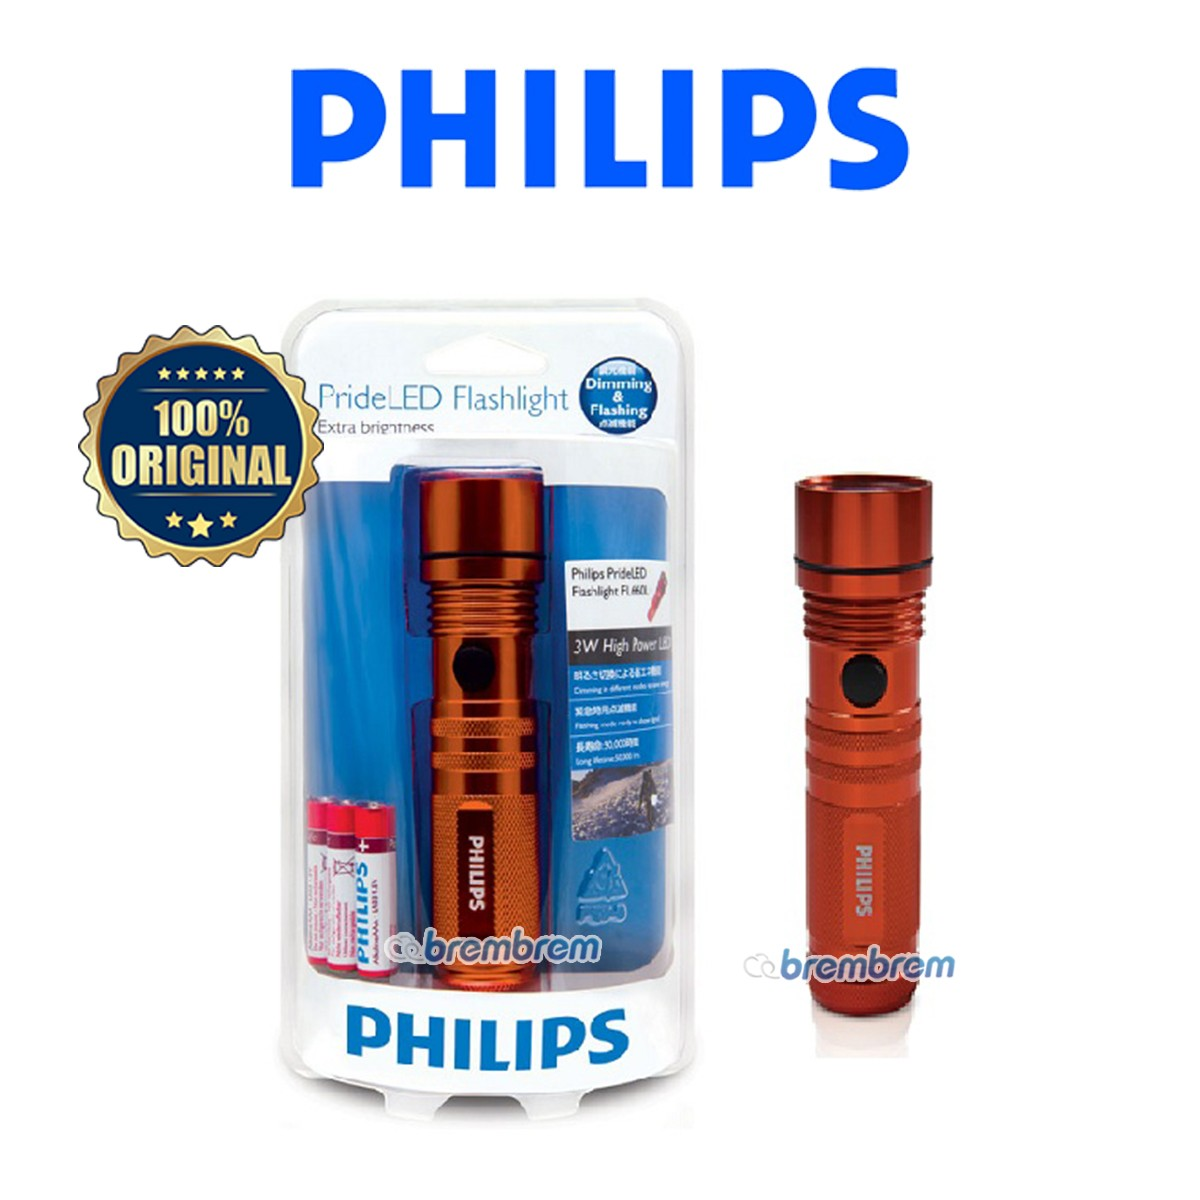 PHILIPS TORCH PRIDELED A RED - LED FLASH LIGHT